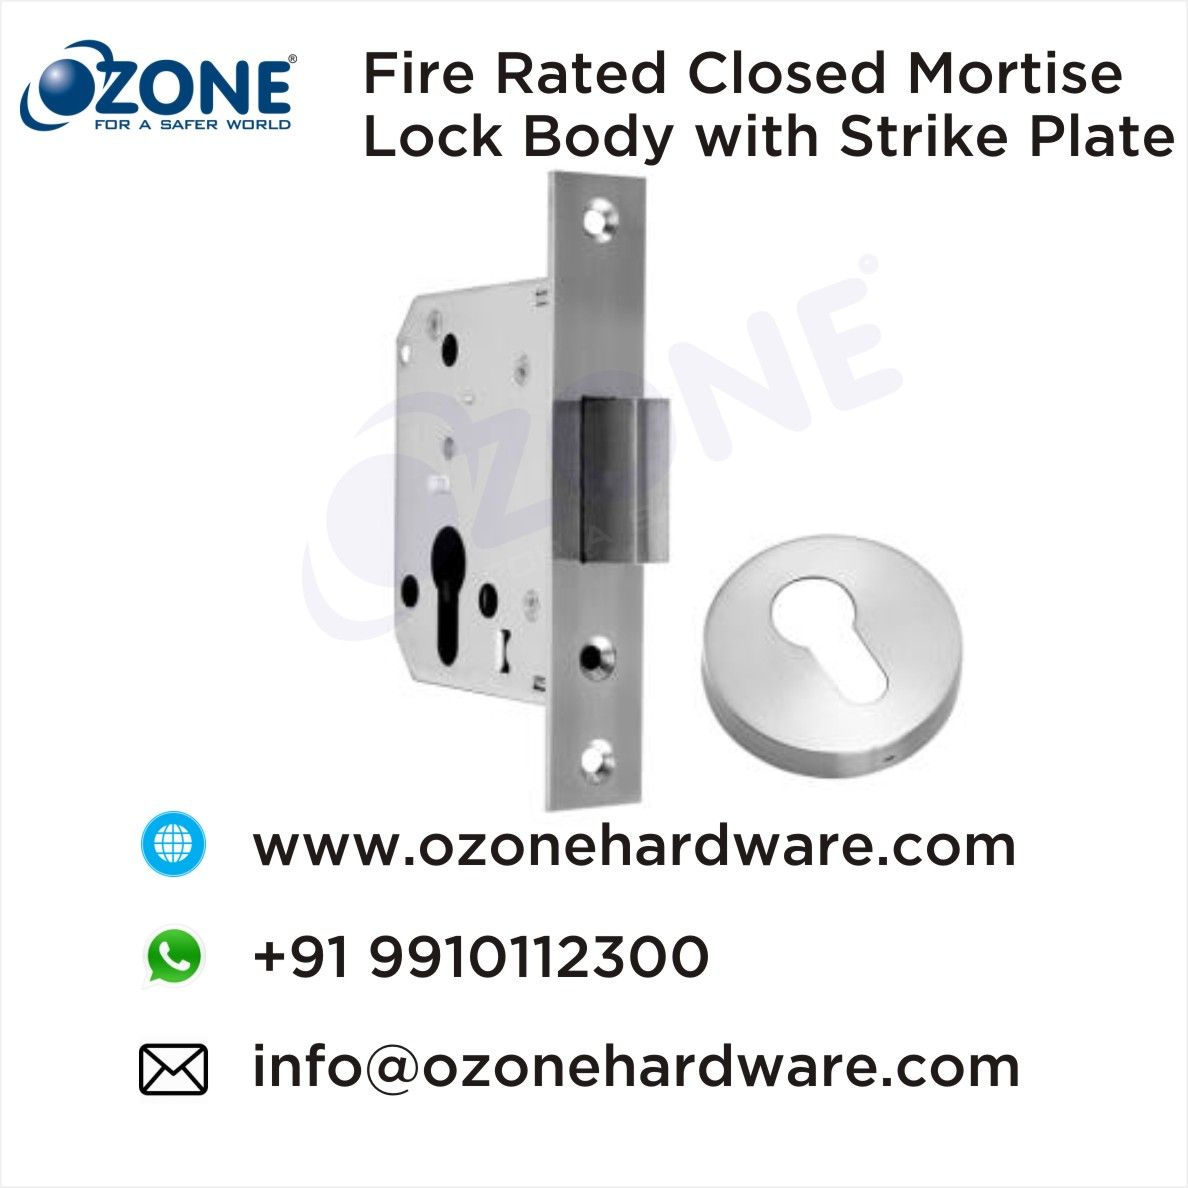 Fire Rated Closed Mortise Lock Body With Strike Plate Door Hardware And Locks High Quality Door Locks Accessories Manufact Mortise Lock Mortising Metal Door